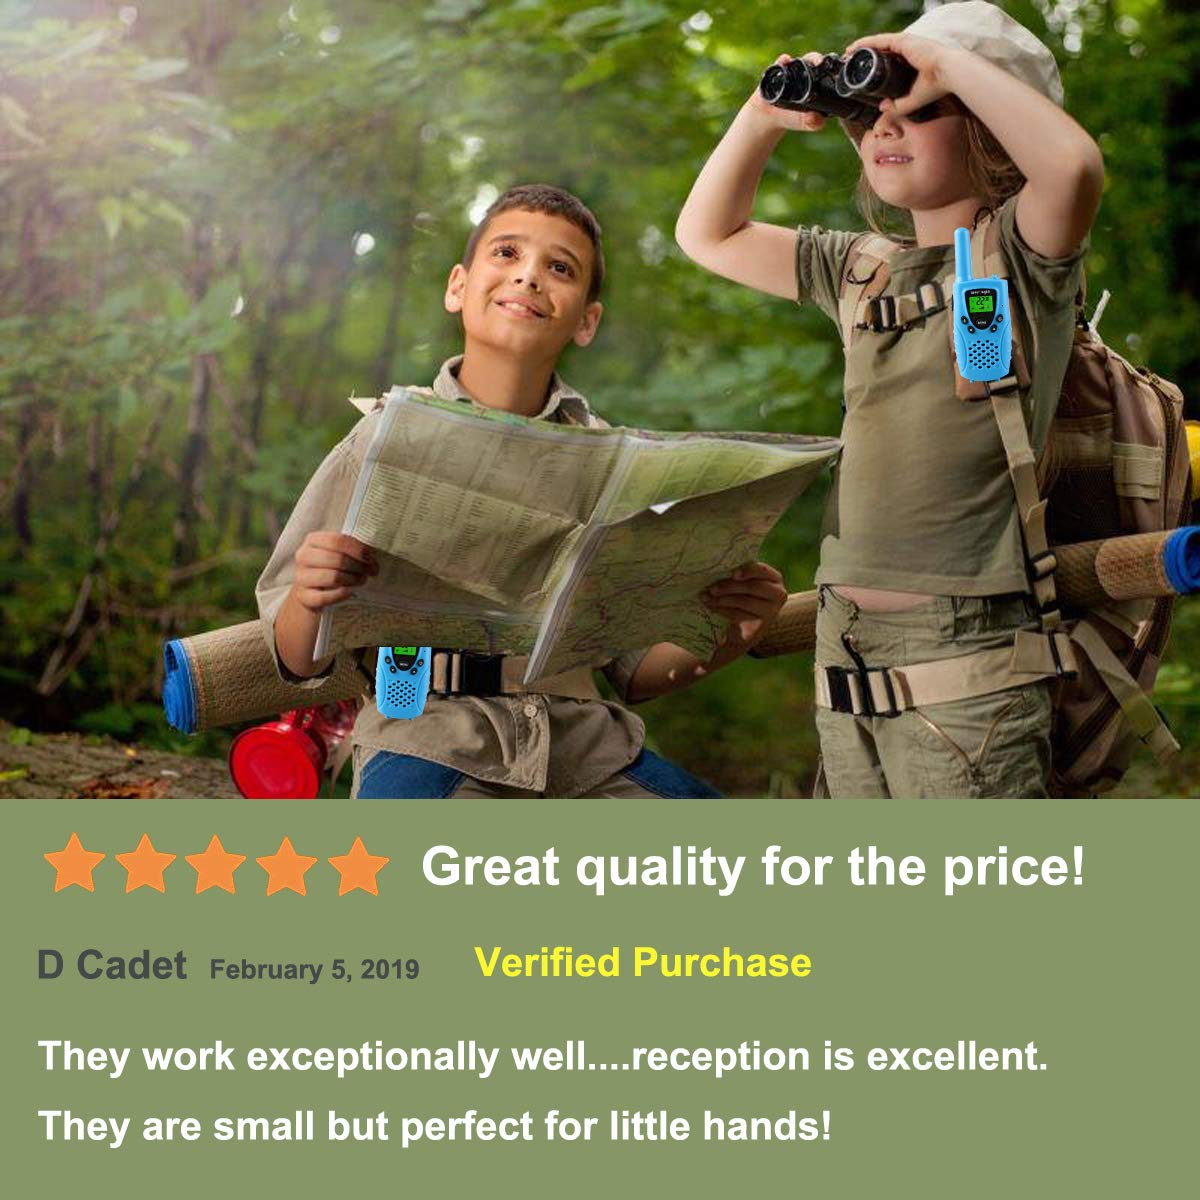 WES TAYIN Kids Walkie Talkies Rechargable, 4 Miles Long Range Walkie Talkies Toy with Durable Rugged Sports Design and Flashlight, Two Way Radios Toy 2 Pack, Batteries not Included(Blue) by WES TAYIN (Image #5)